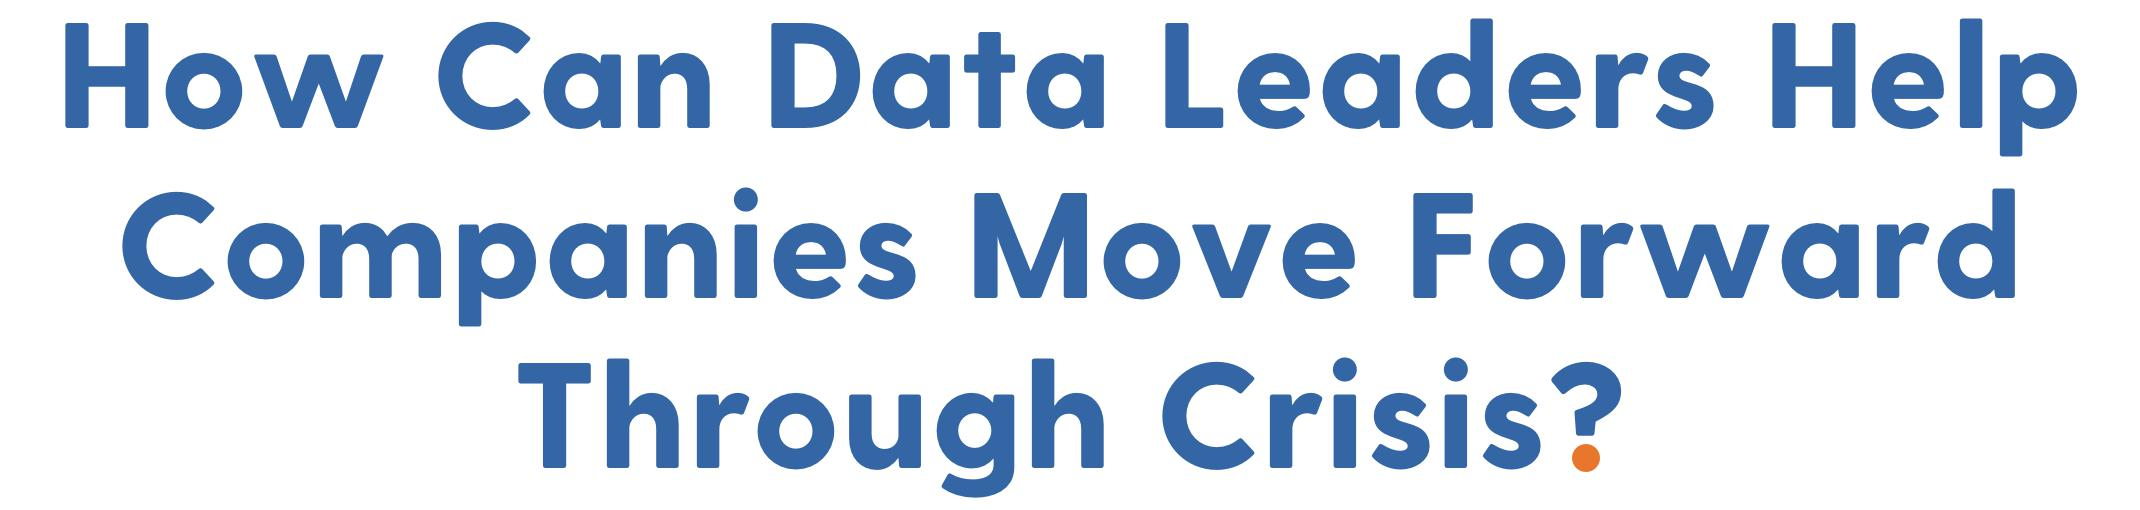 Section 02: How Can Data Leaders Help Companies Move Forward Through Crisis?